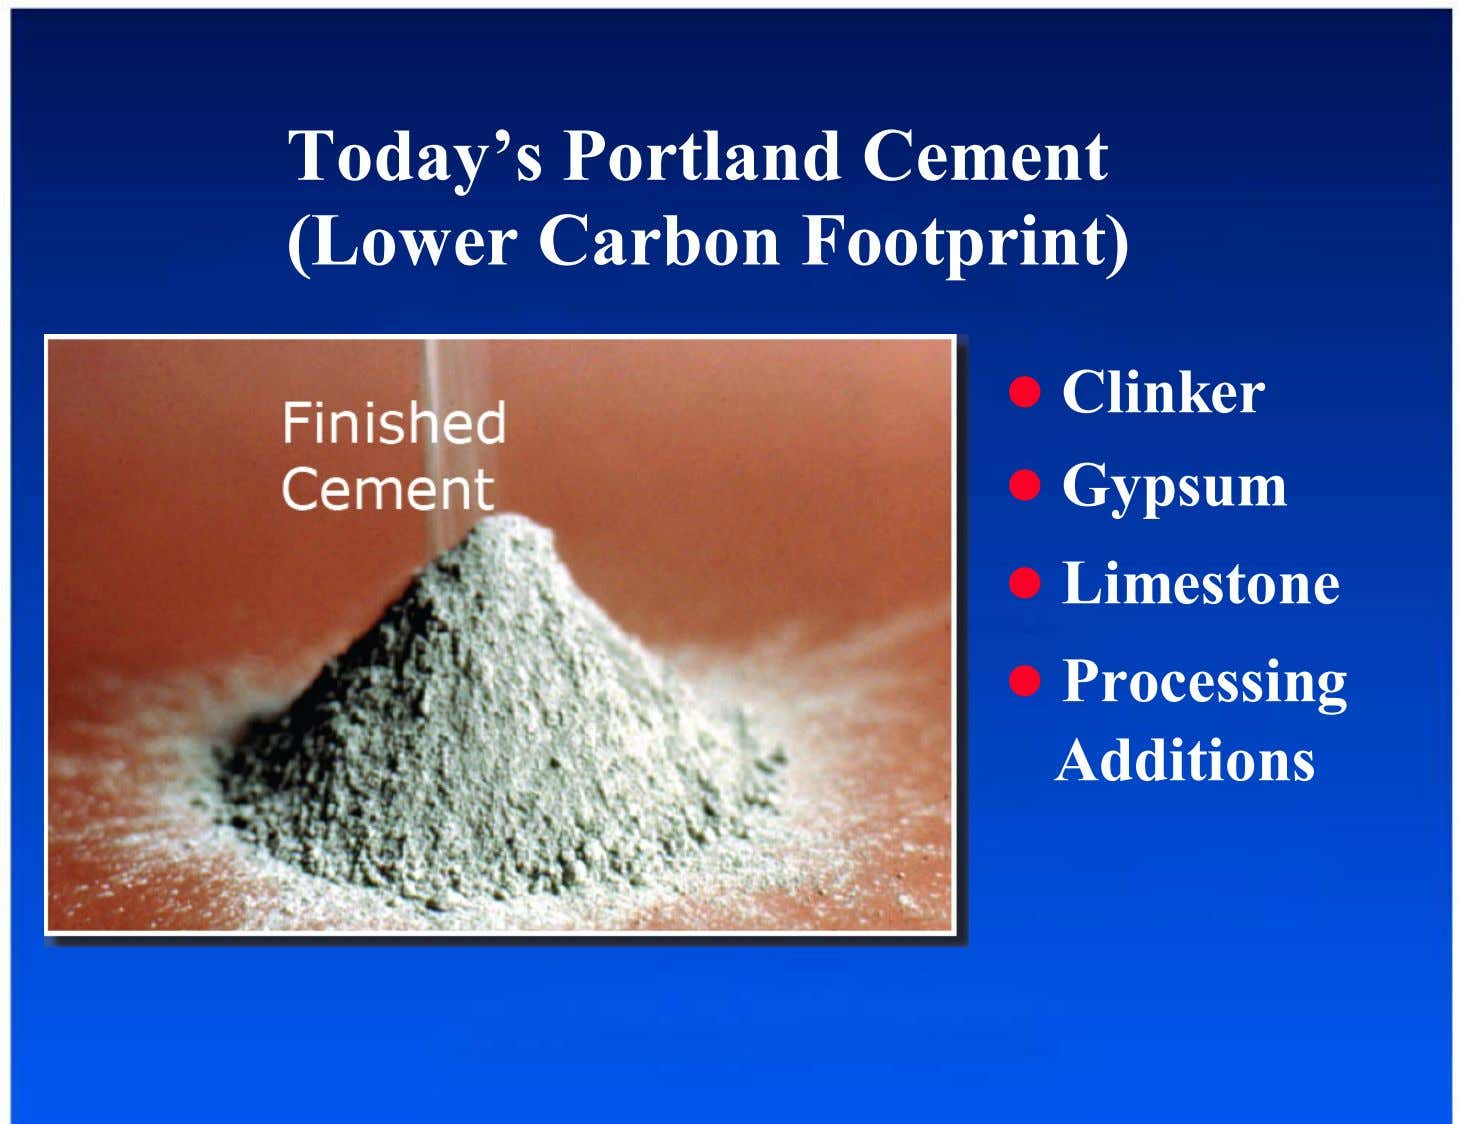 Today's Portland Cement (Lower Carbon Footprint) ● Clinker Finished Cement ● Gypsum ● Limestone